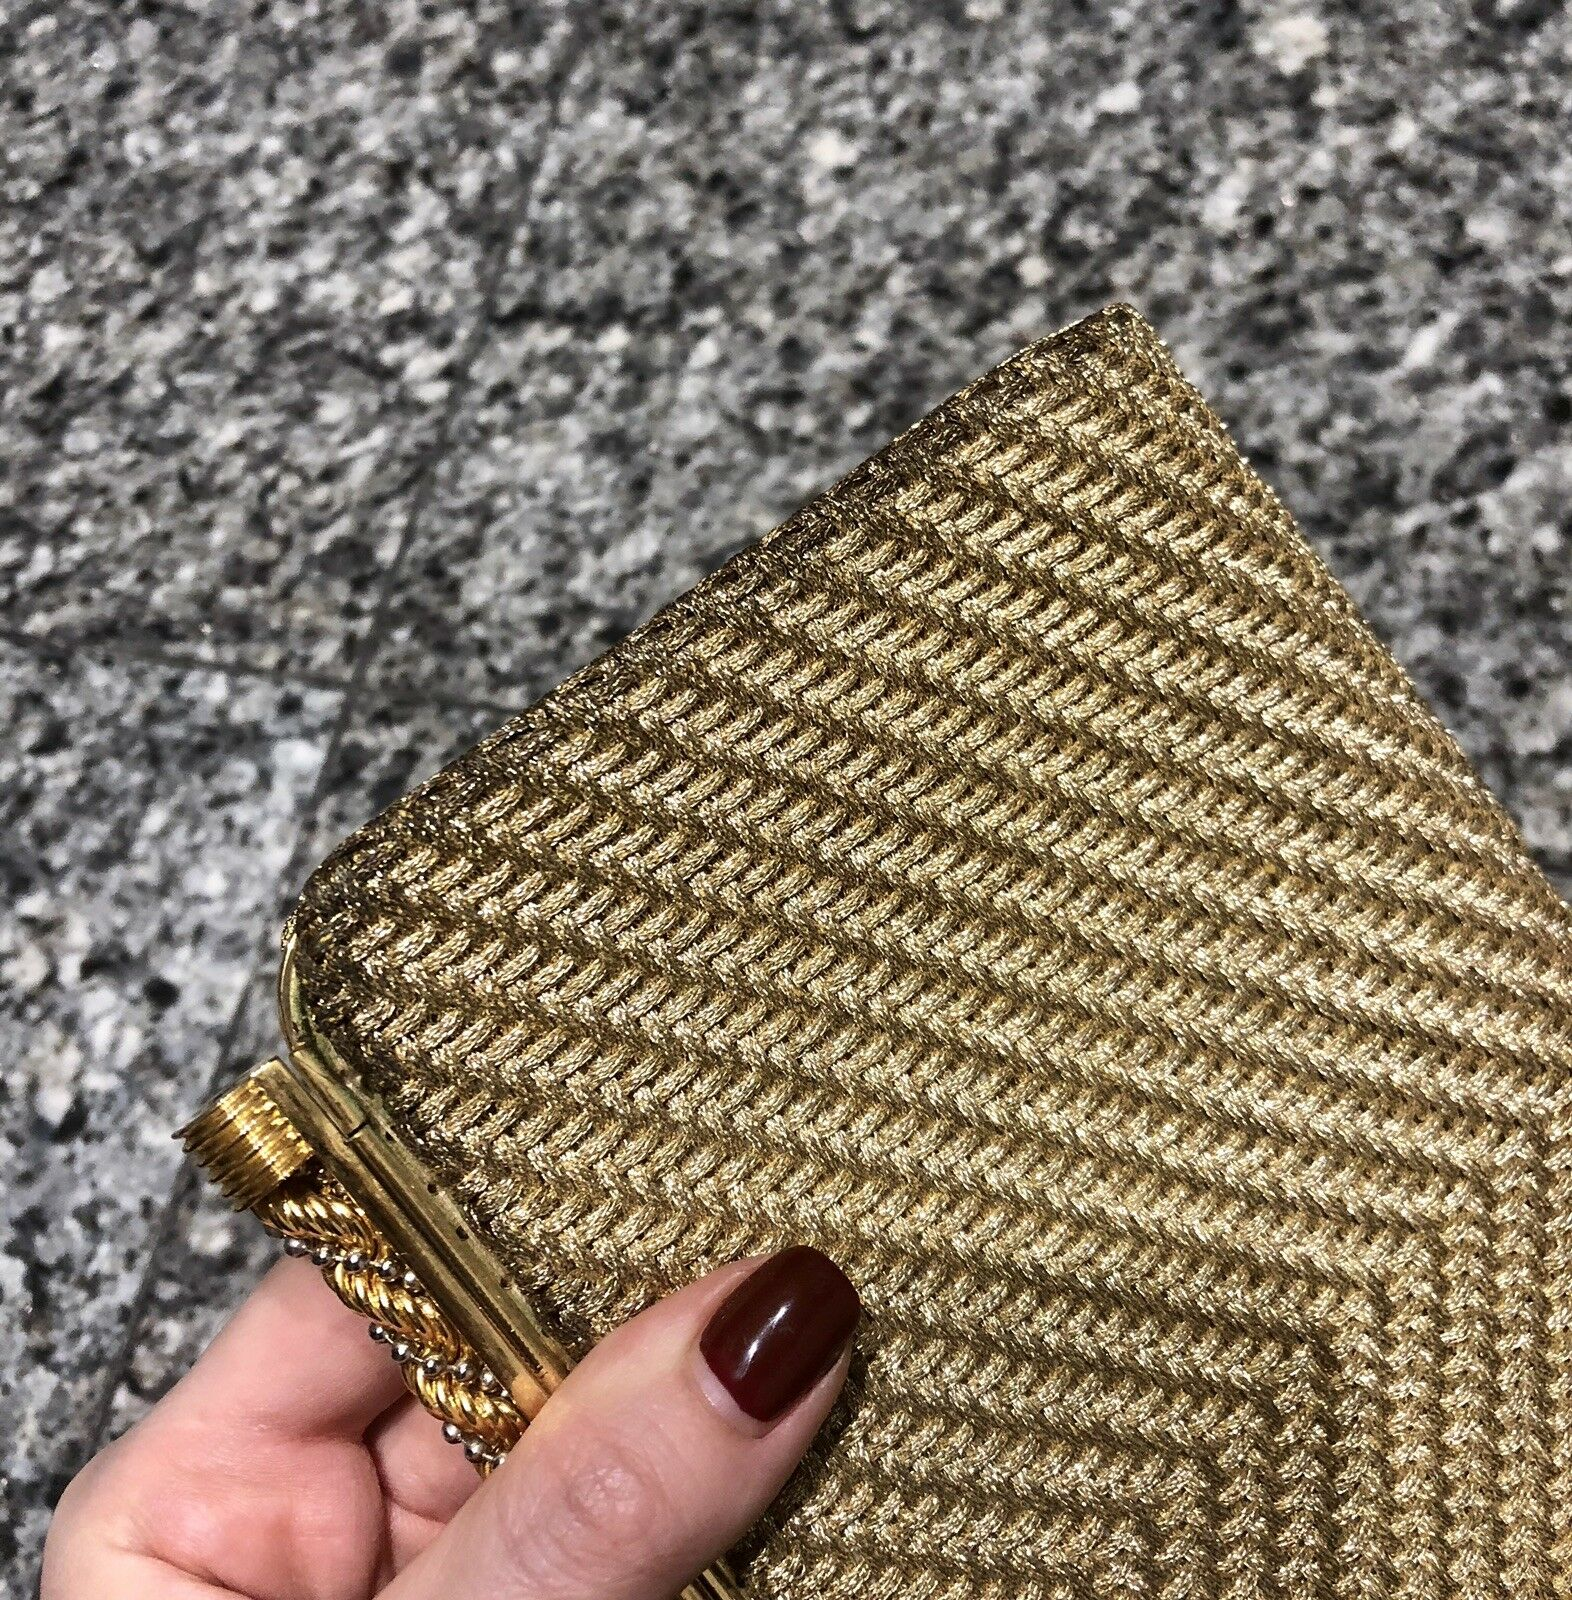 GUCCI 1970's Gold Woven Metal Clutch Bag - image 6